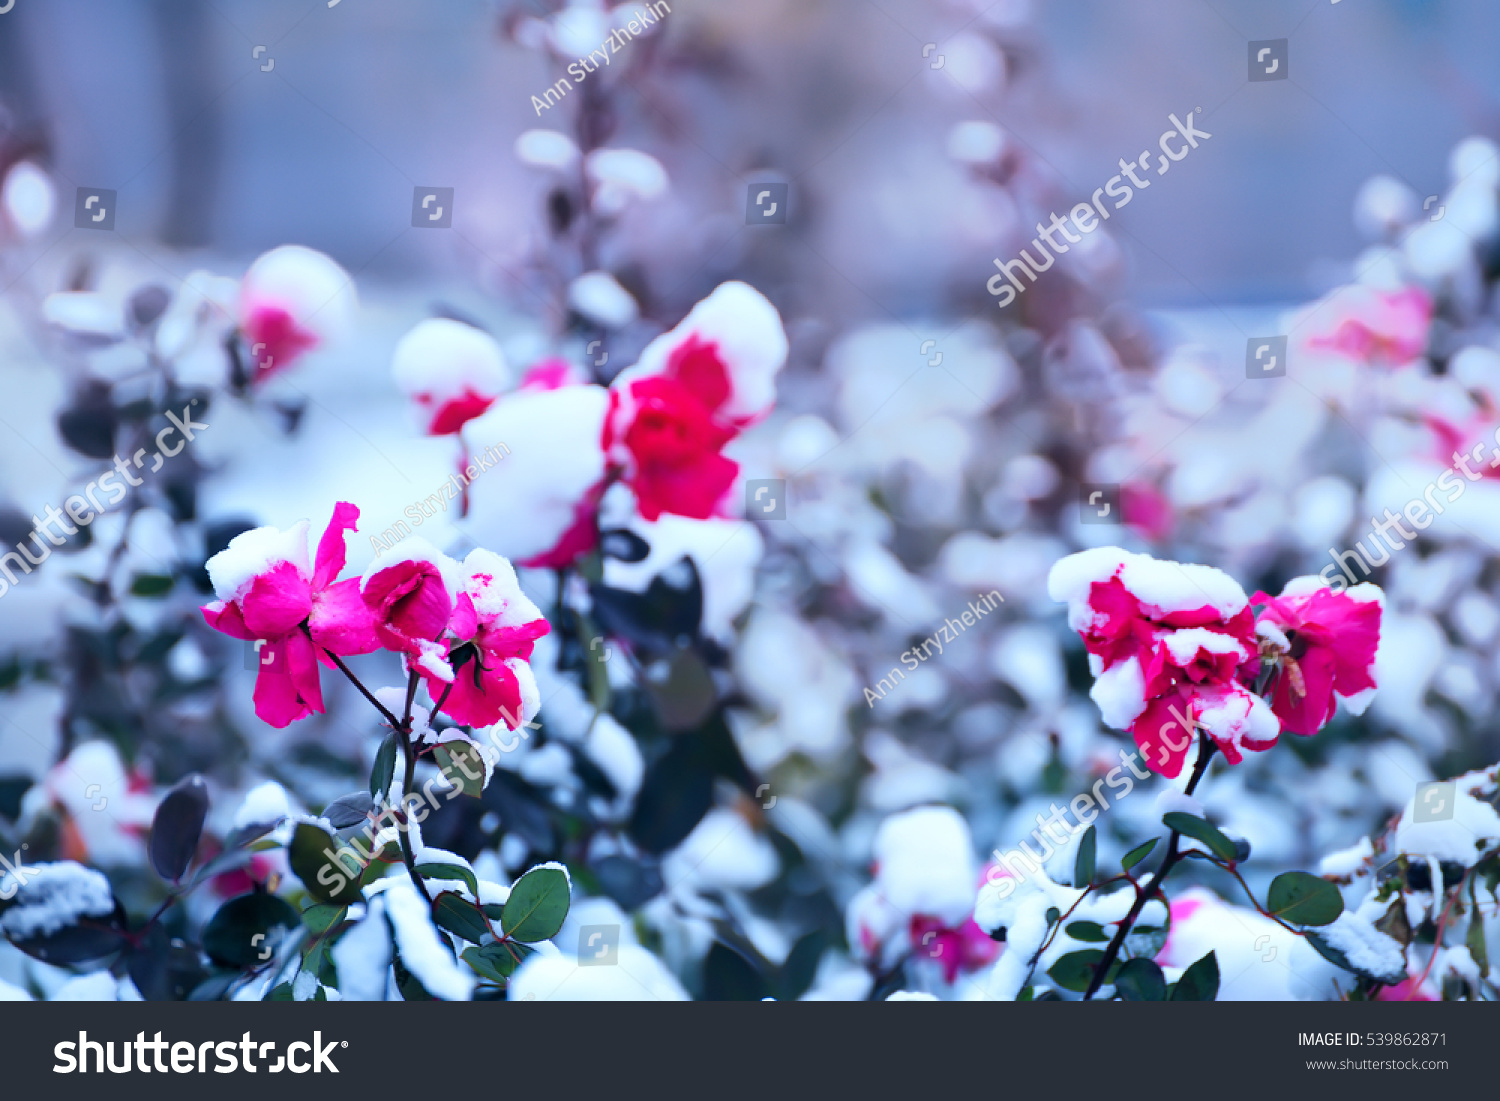 Red roses beautiful flowers covered fluffy stock photo edit now red roses beautiful flowers covered with fluffy snow beautiful winter background izmirmasajfo